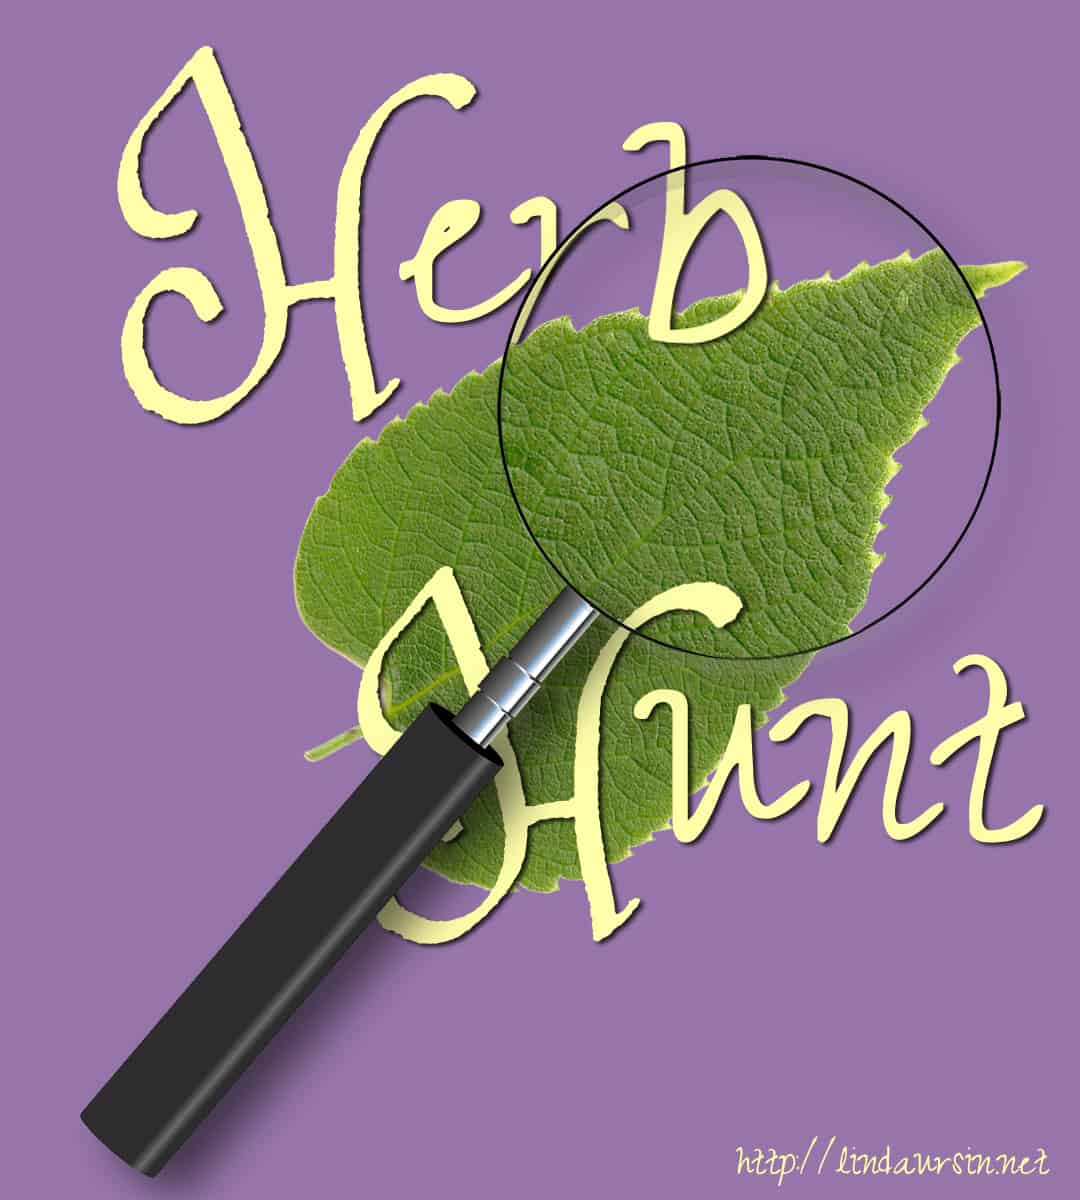 Herb hunt today and you can win a new prosperity amulet